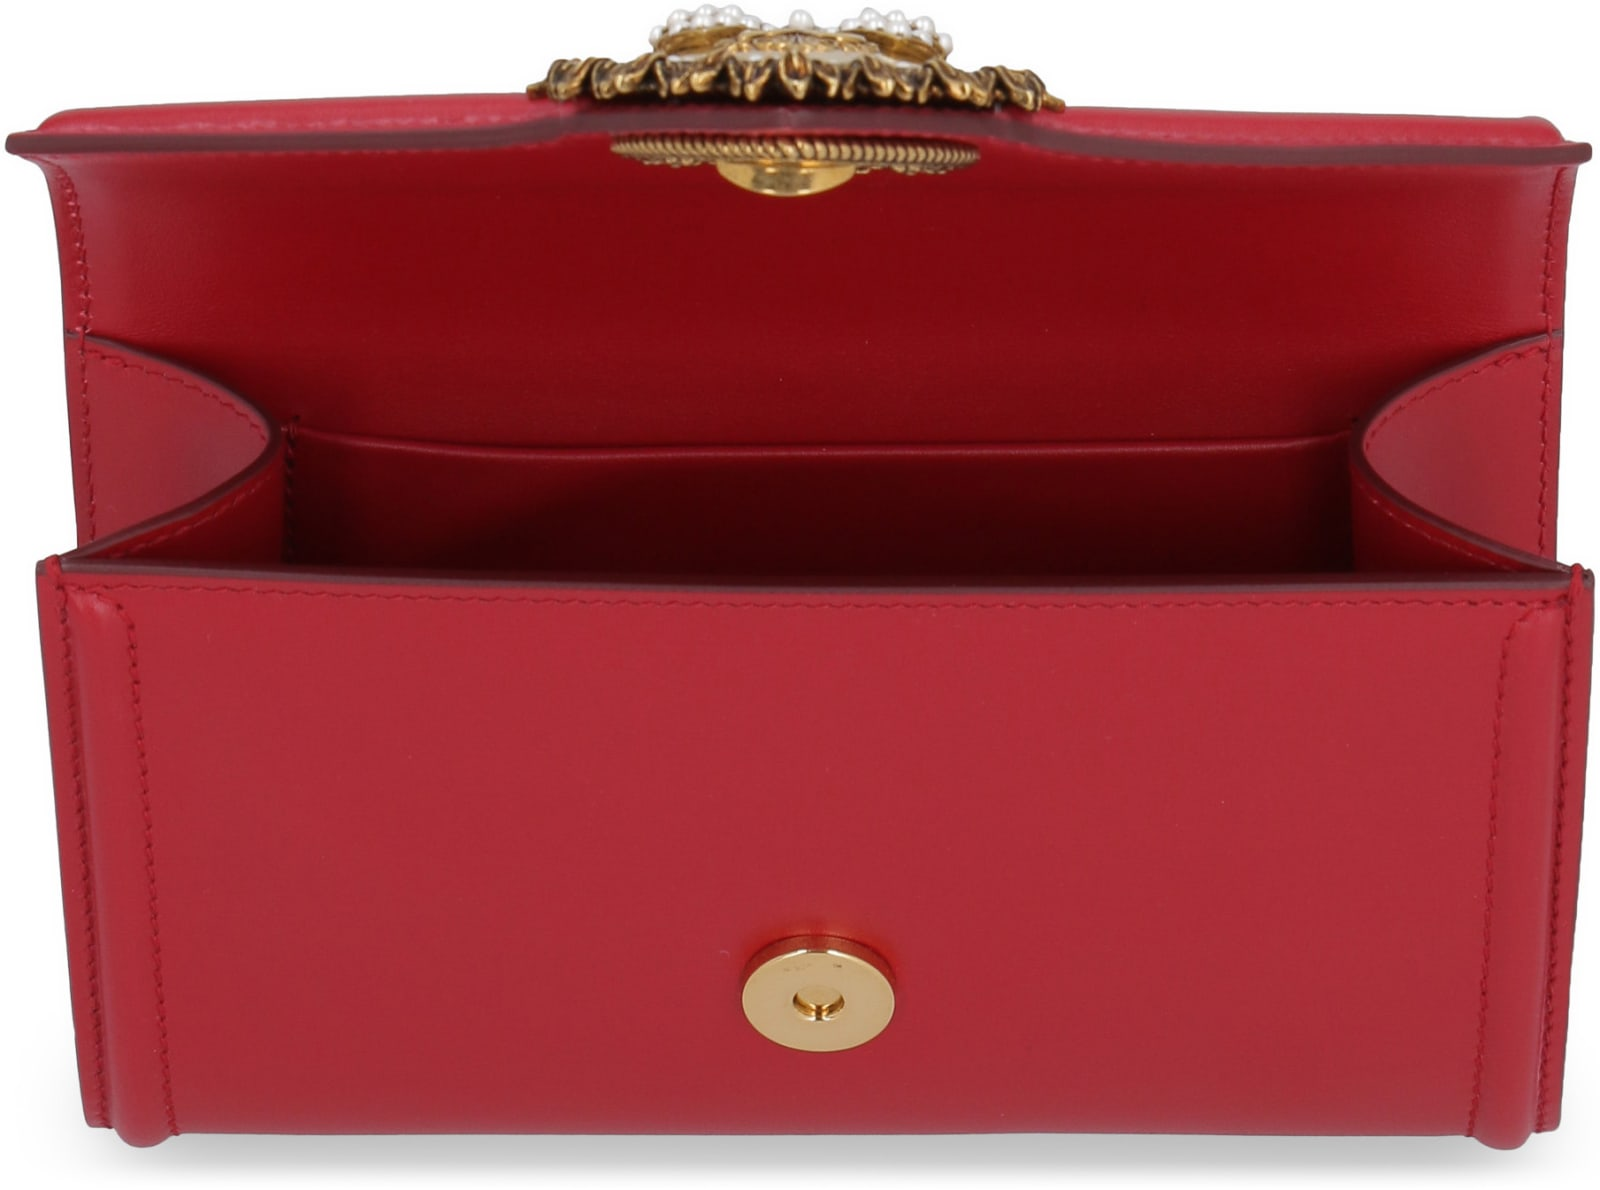 1217478c400 Dolce & Gabbana Devotion Leather Belt Bag